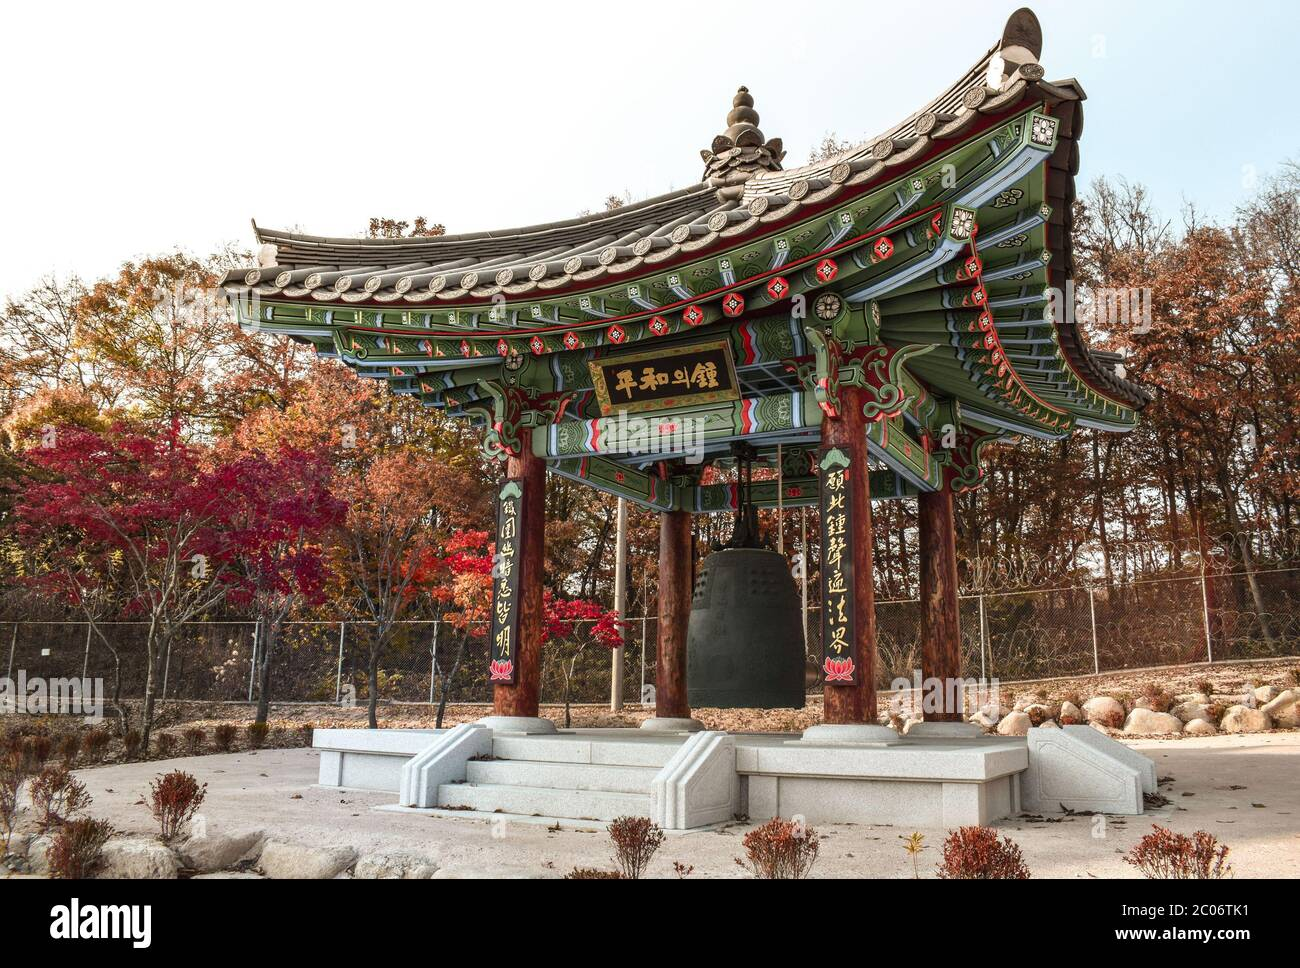 Large Buddhist Bell in a Pavilion with Green and Red Ornaments in the DMZ in South Korea Stock Photo